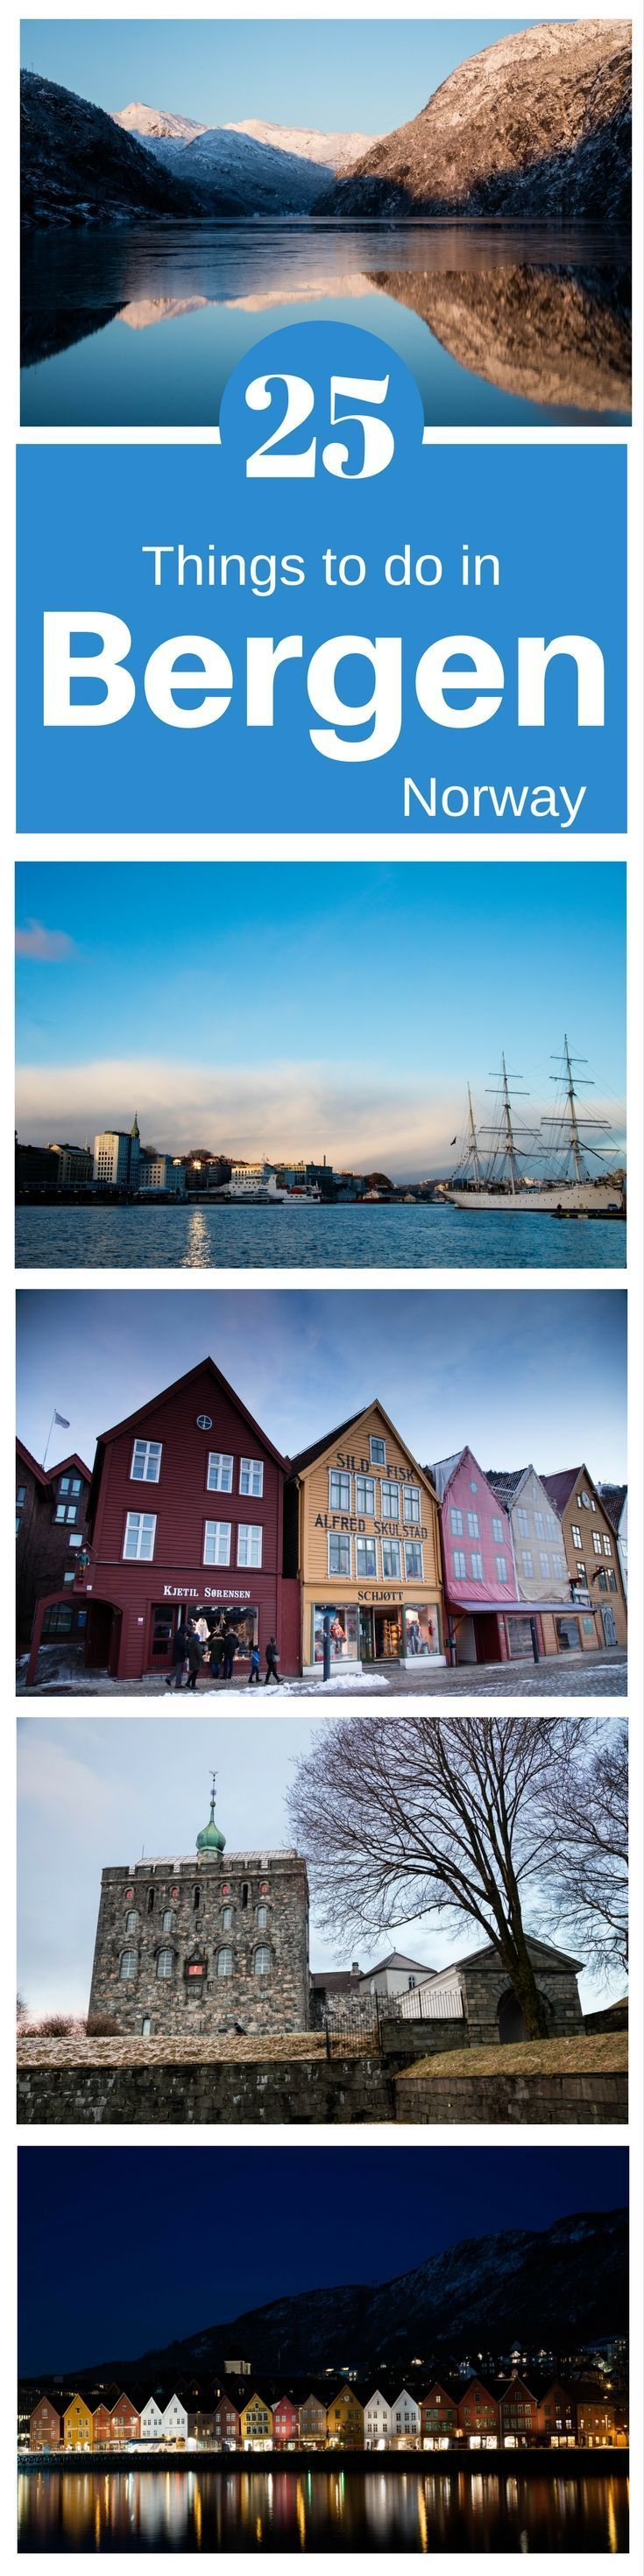 Norway is known for its winter fun, but did you know that Bergen has it all right there in one city? Check out our 25 things to do in Bergen in winter. #Norway #winter #Europe